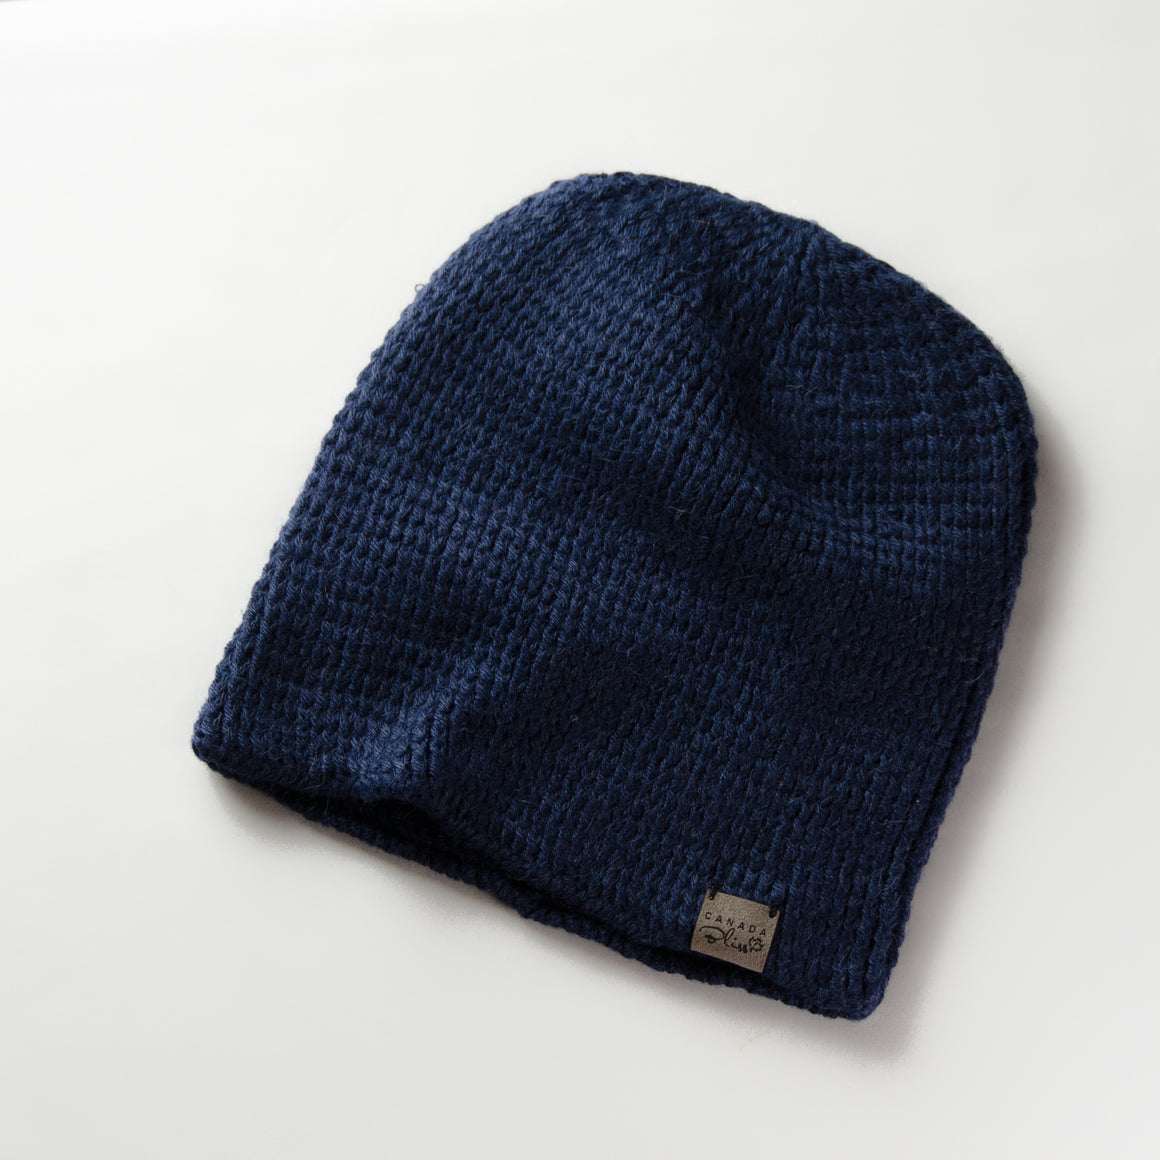 Fundamental Pom Pom Hat Toque | Dark Navy Alpaca | Fur Pom Pom